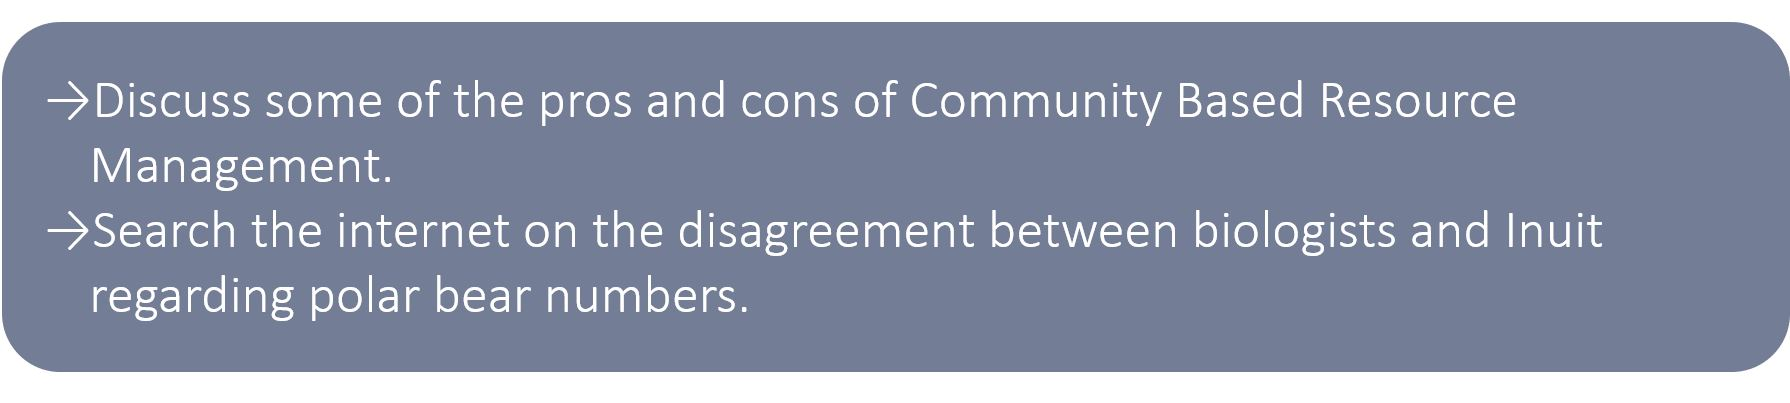 Discuss some of the pros and cons of Community Based Resource Management. Search the internet on the disagreement between biologists and Inuit regarding polar bear numbers.